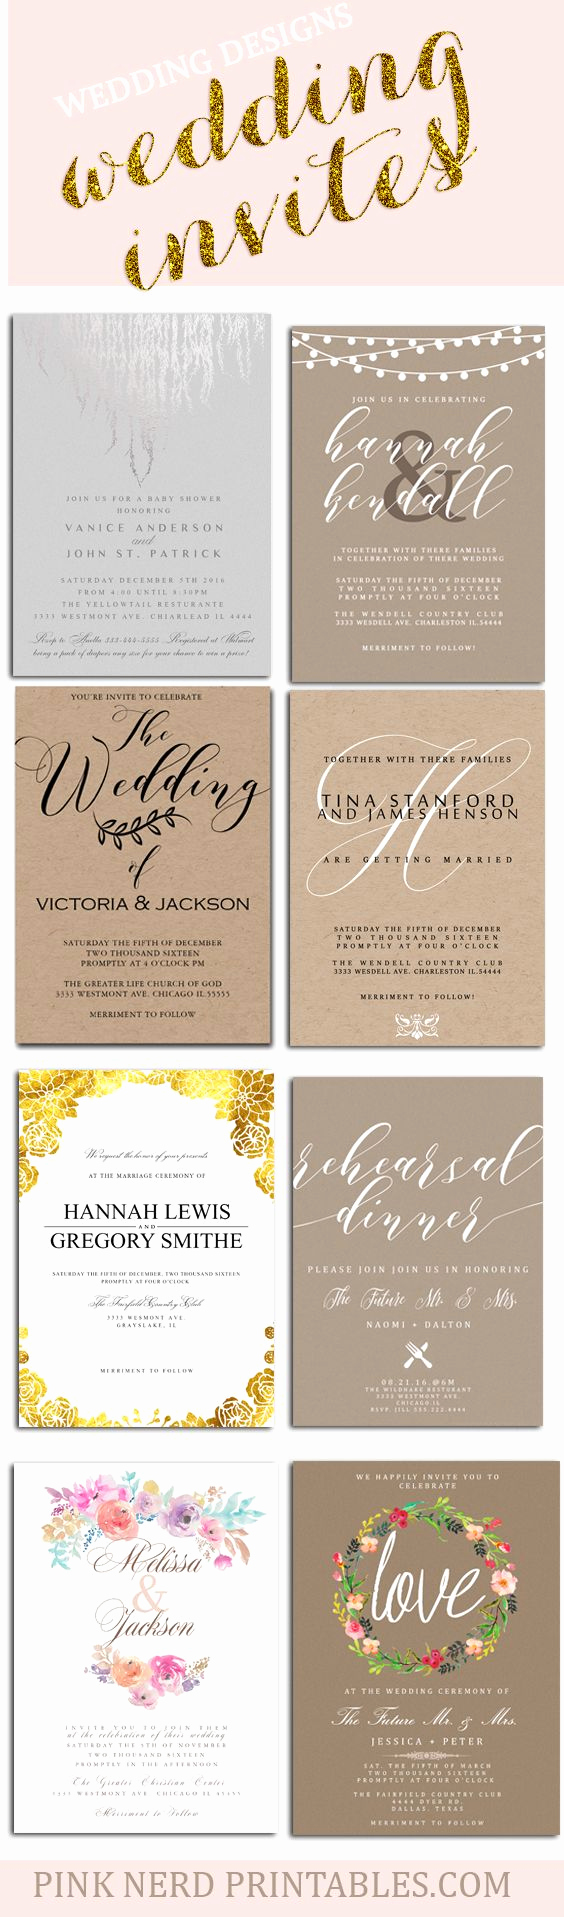 Cheap Wedding Invitation Ideas Fresh Best 25 Cheap Wedding Invitations Ideas On Pinterest